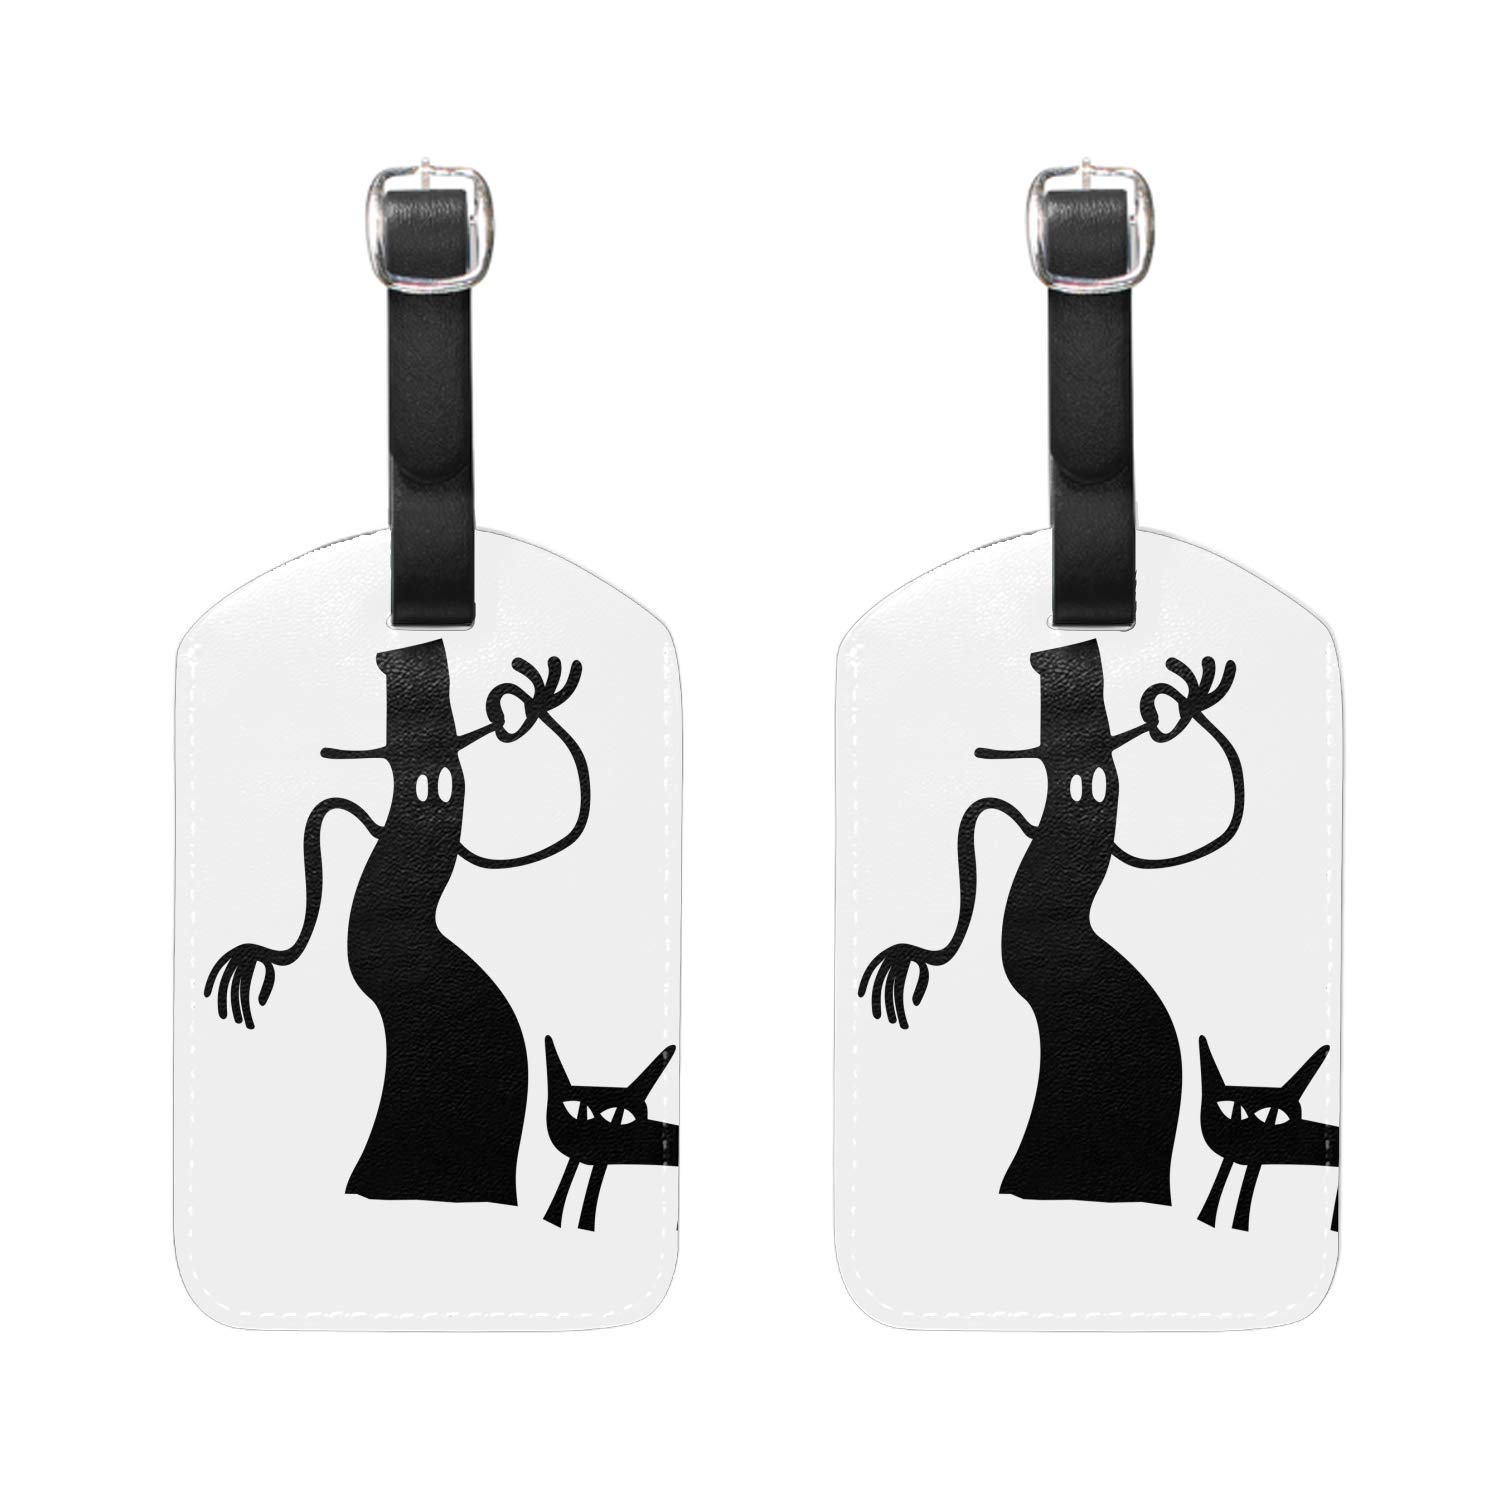 Dog Housekeeping Staff Print Luggage Identifiers with Strap Closure